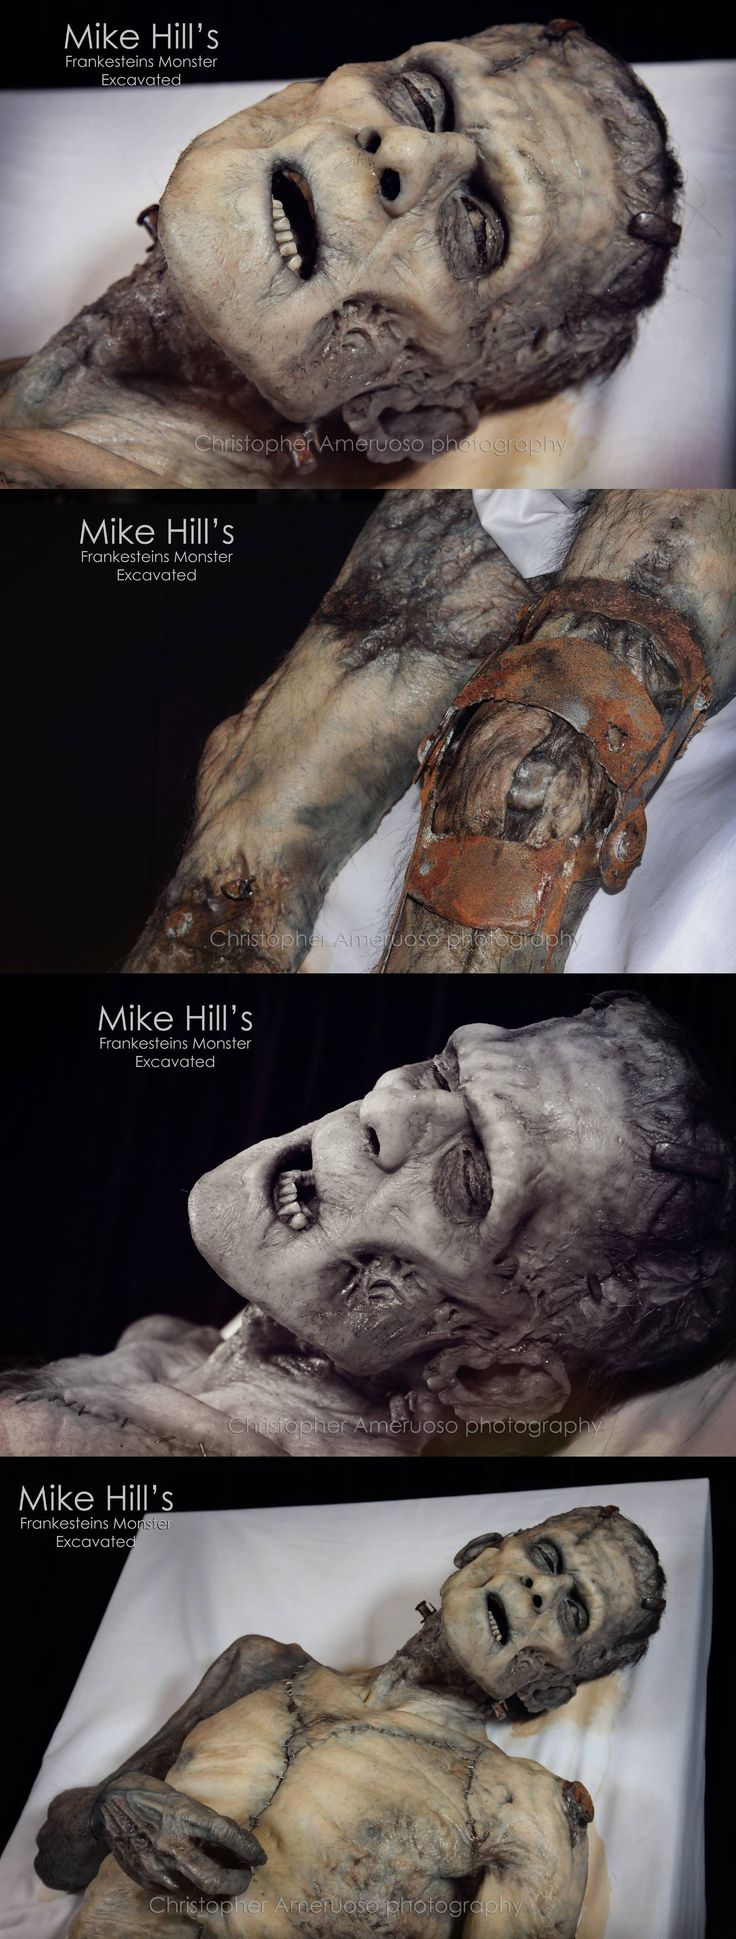 Monsterpalooza 2014. Mike Hills amazing Frankensteins Monster Excavated. Now YOU Can Create Mind-Blowing Artistic Images With Top Secret Photography Tutorials With Step-By-Step Instructions! http://trick-photo-graphybook-today.blogspot.com?prod=WlankFlr